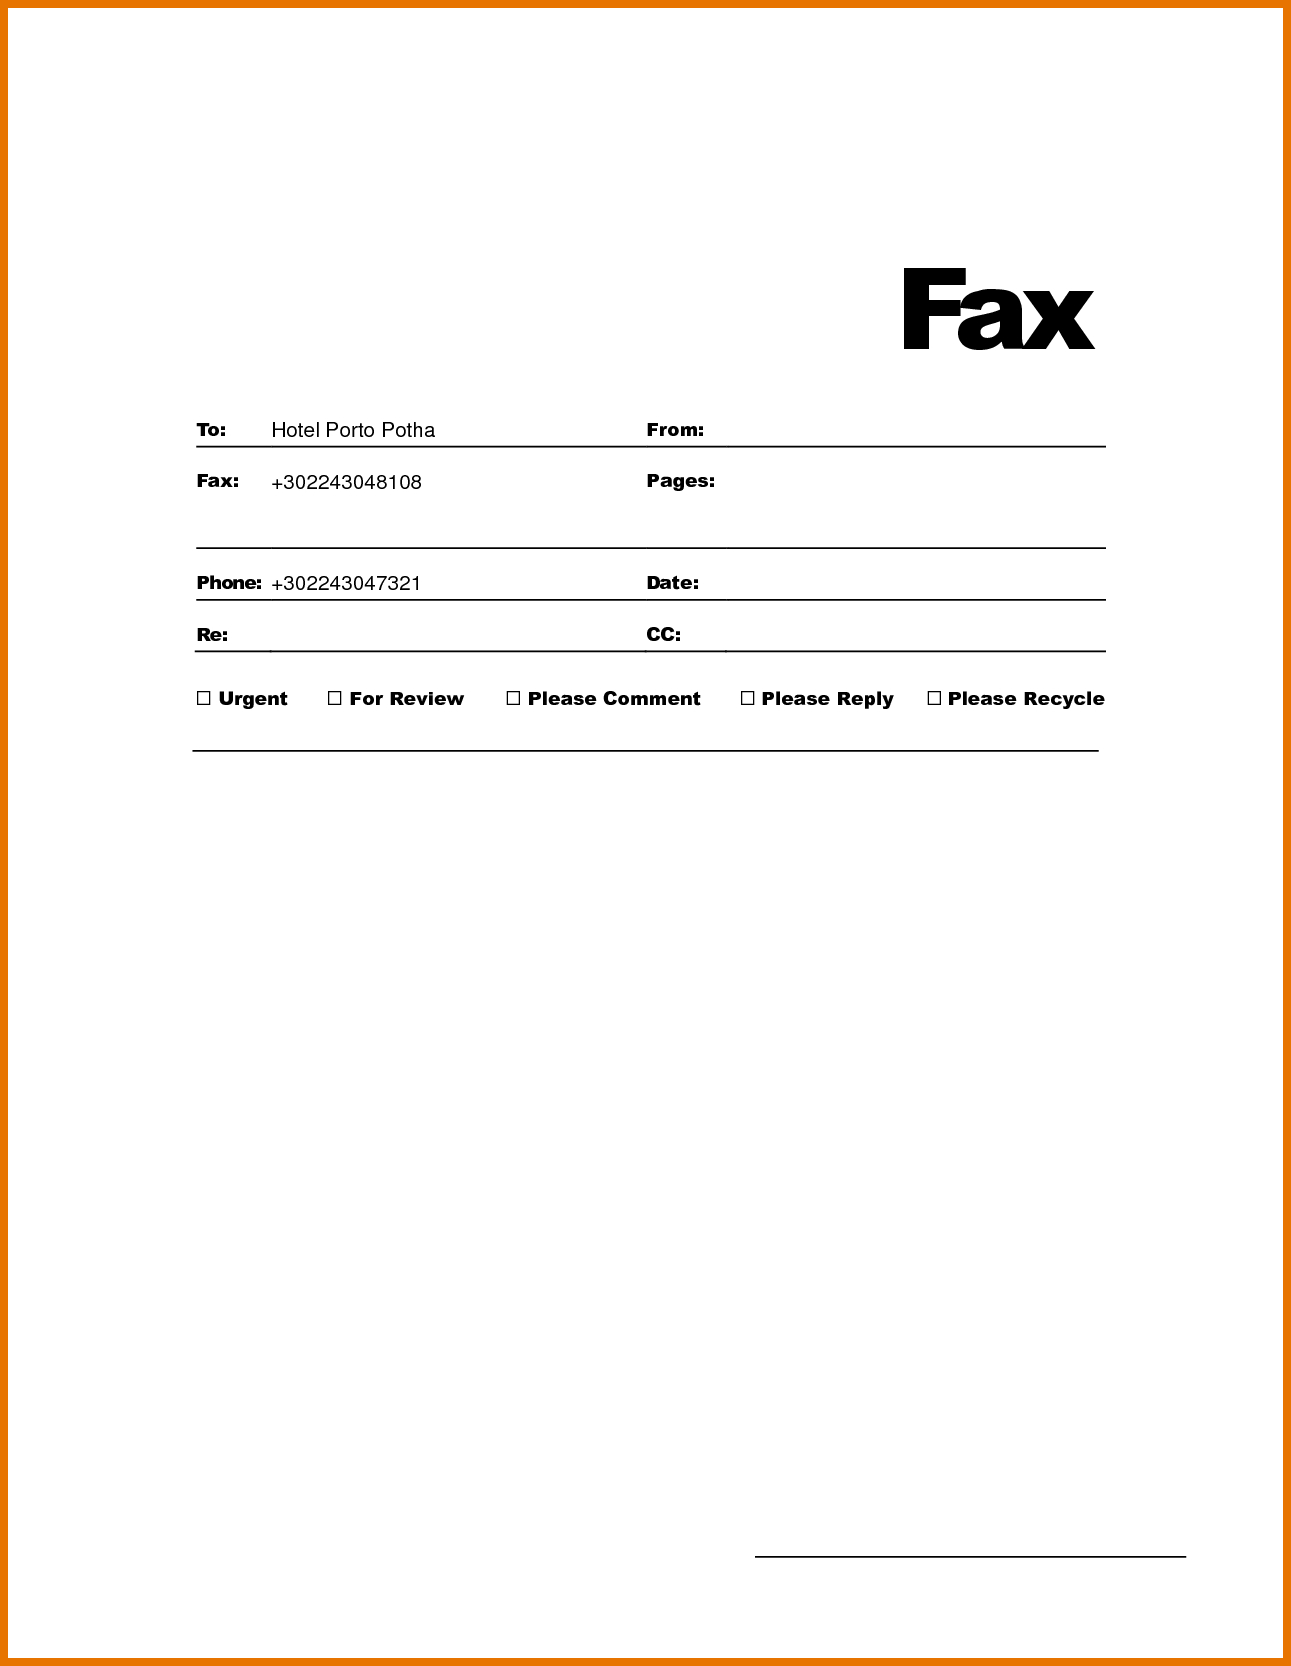 Fax Cover Letter Template Google Docs - Openoffice Fax Cover Template